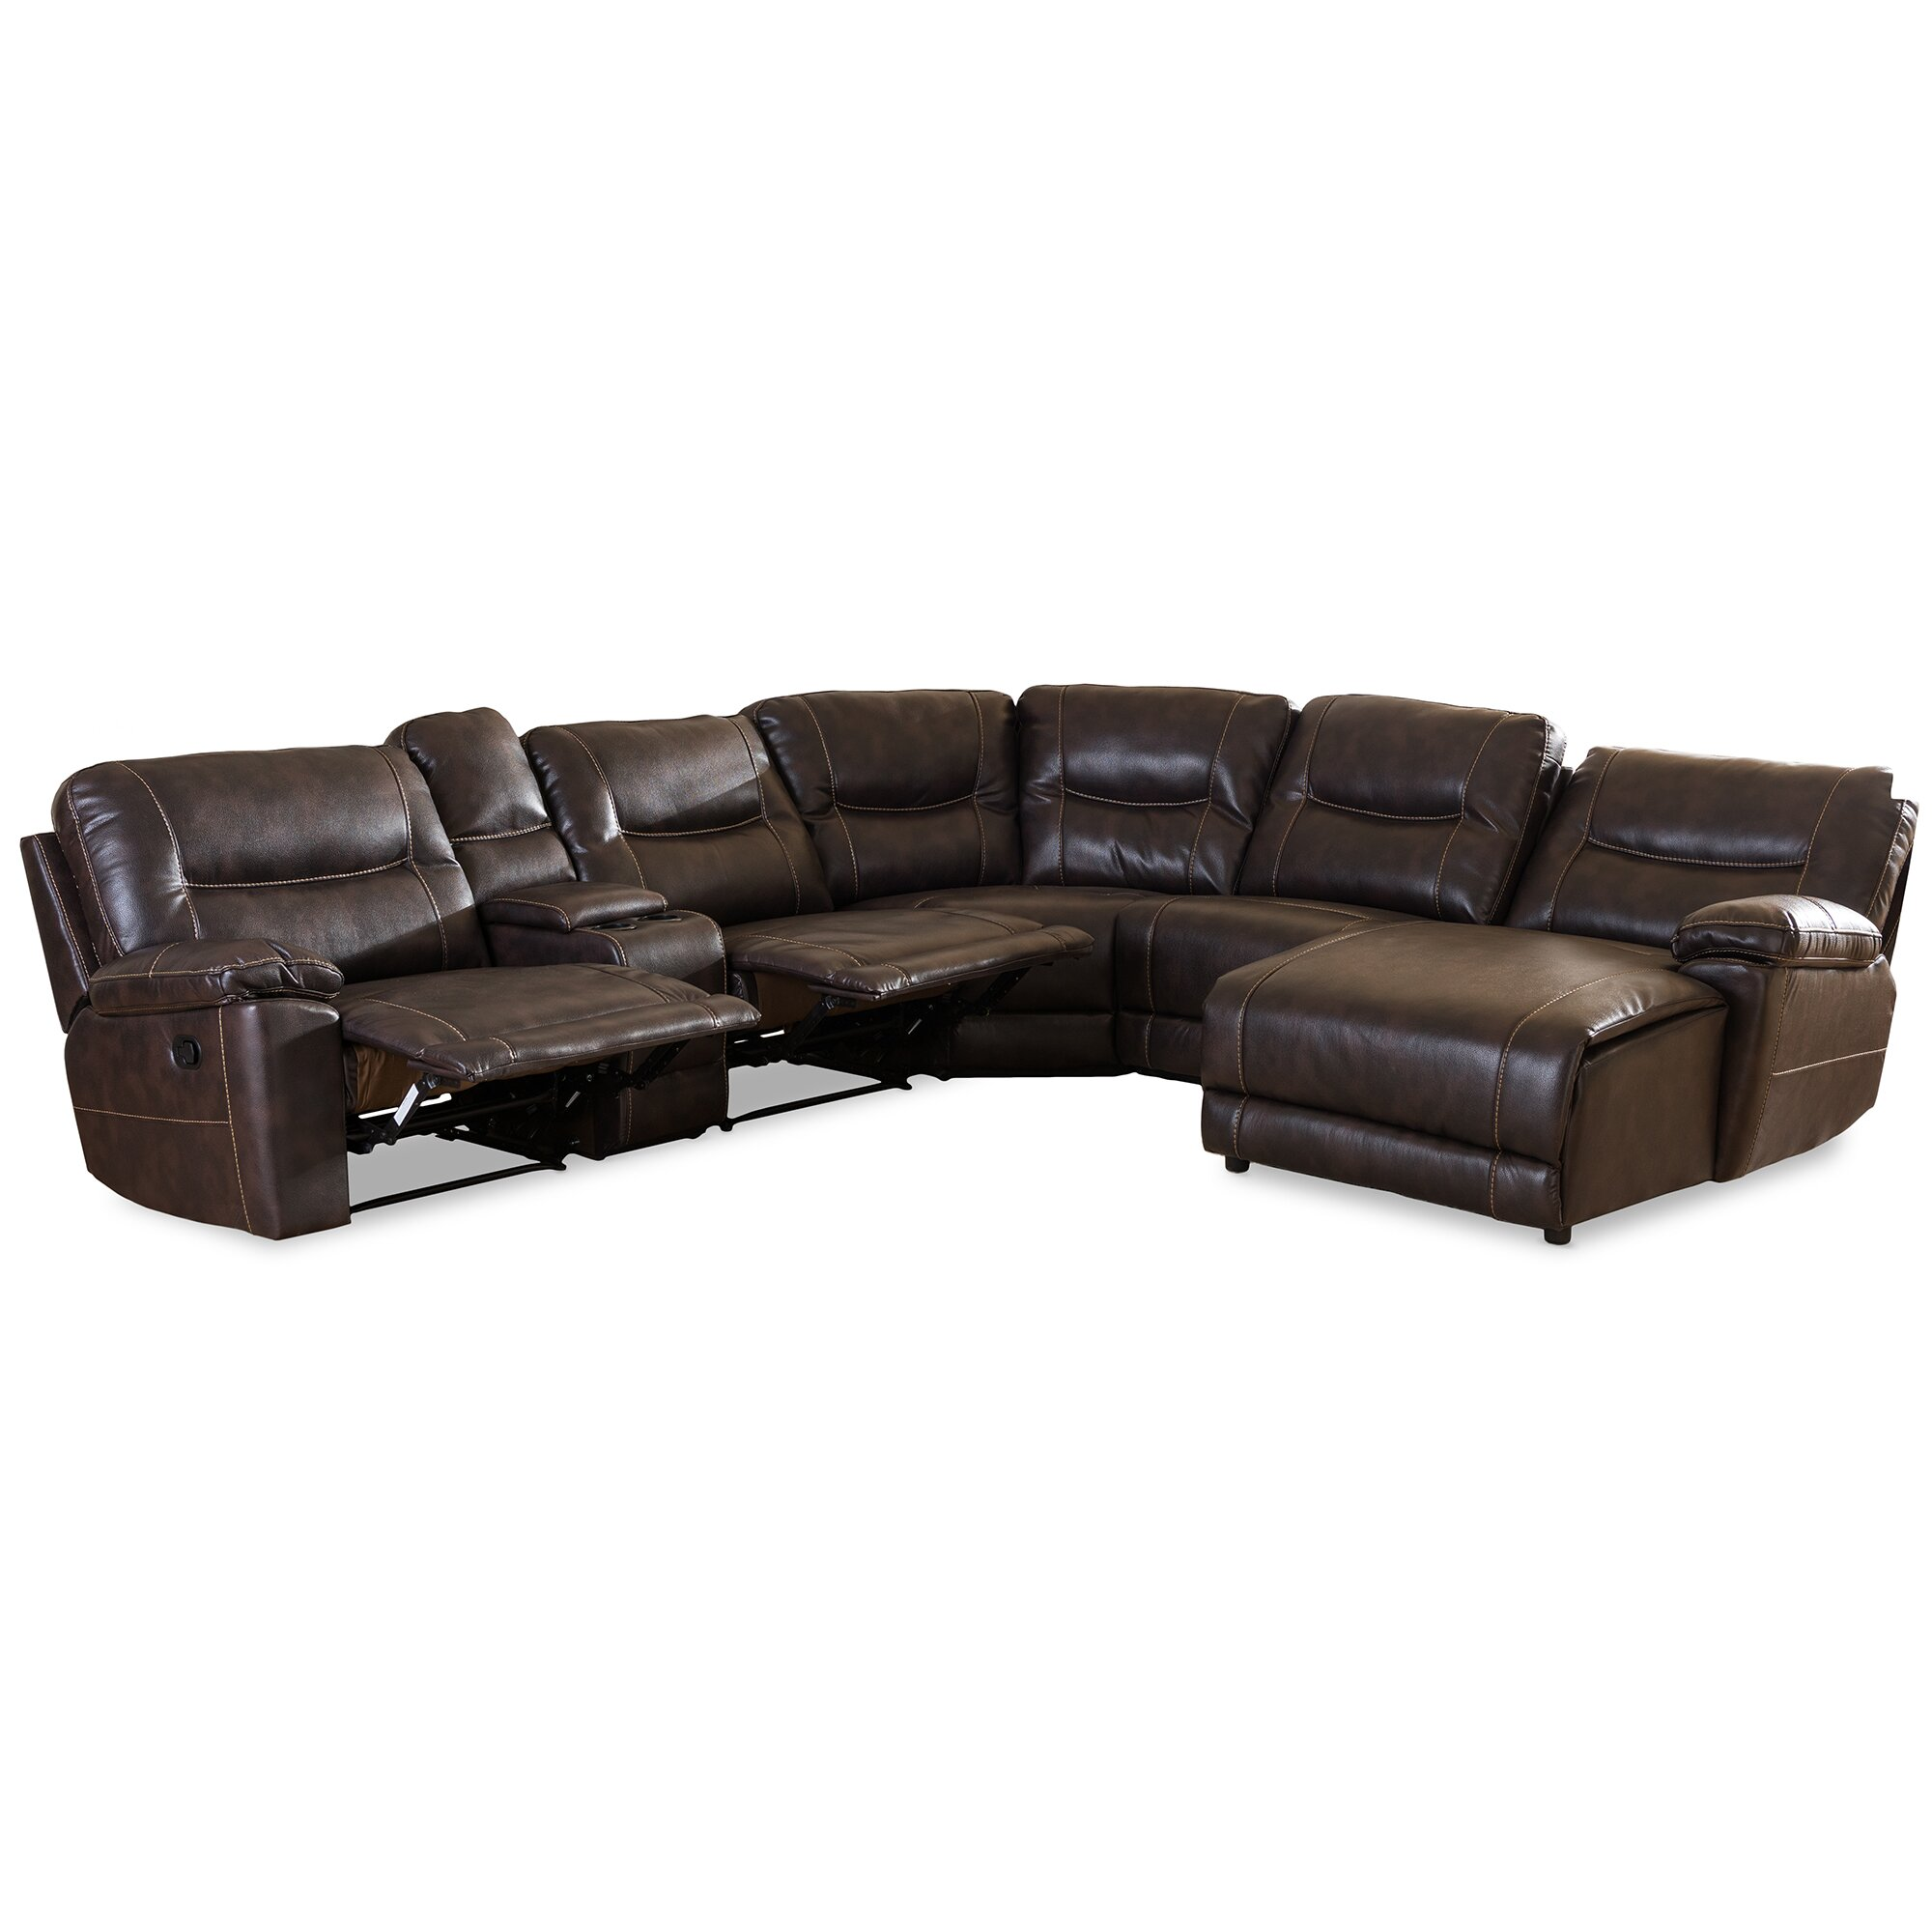 Furniture living room furniture brown sectional sofas wholesale